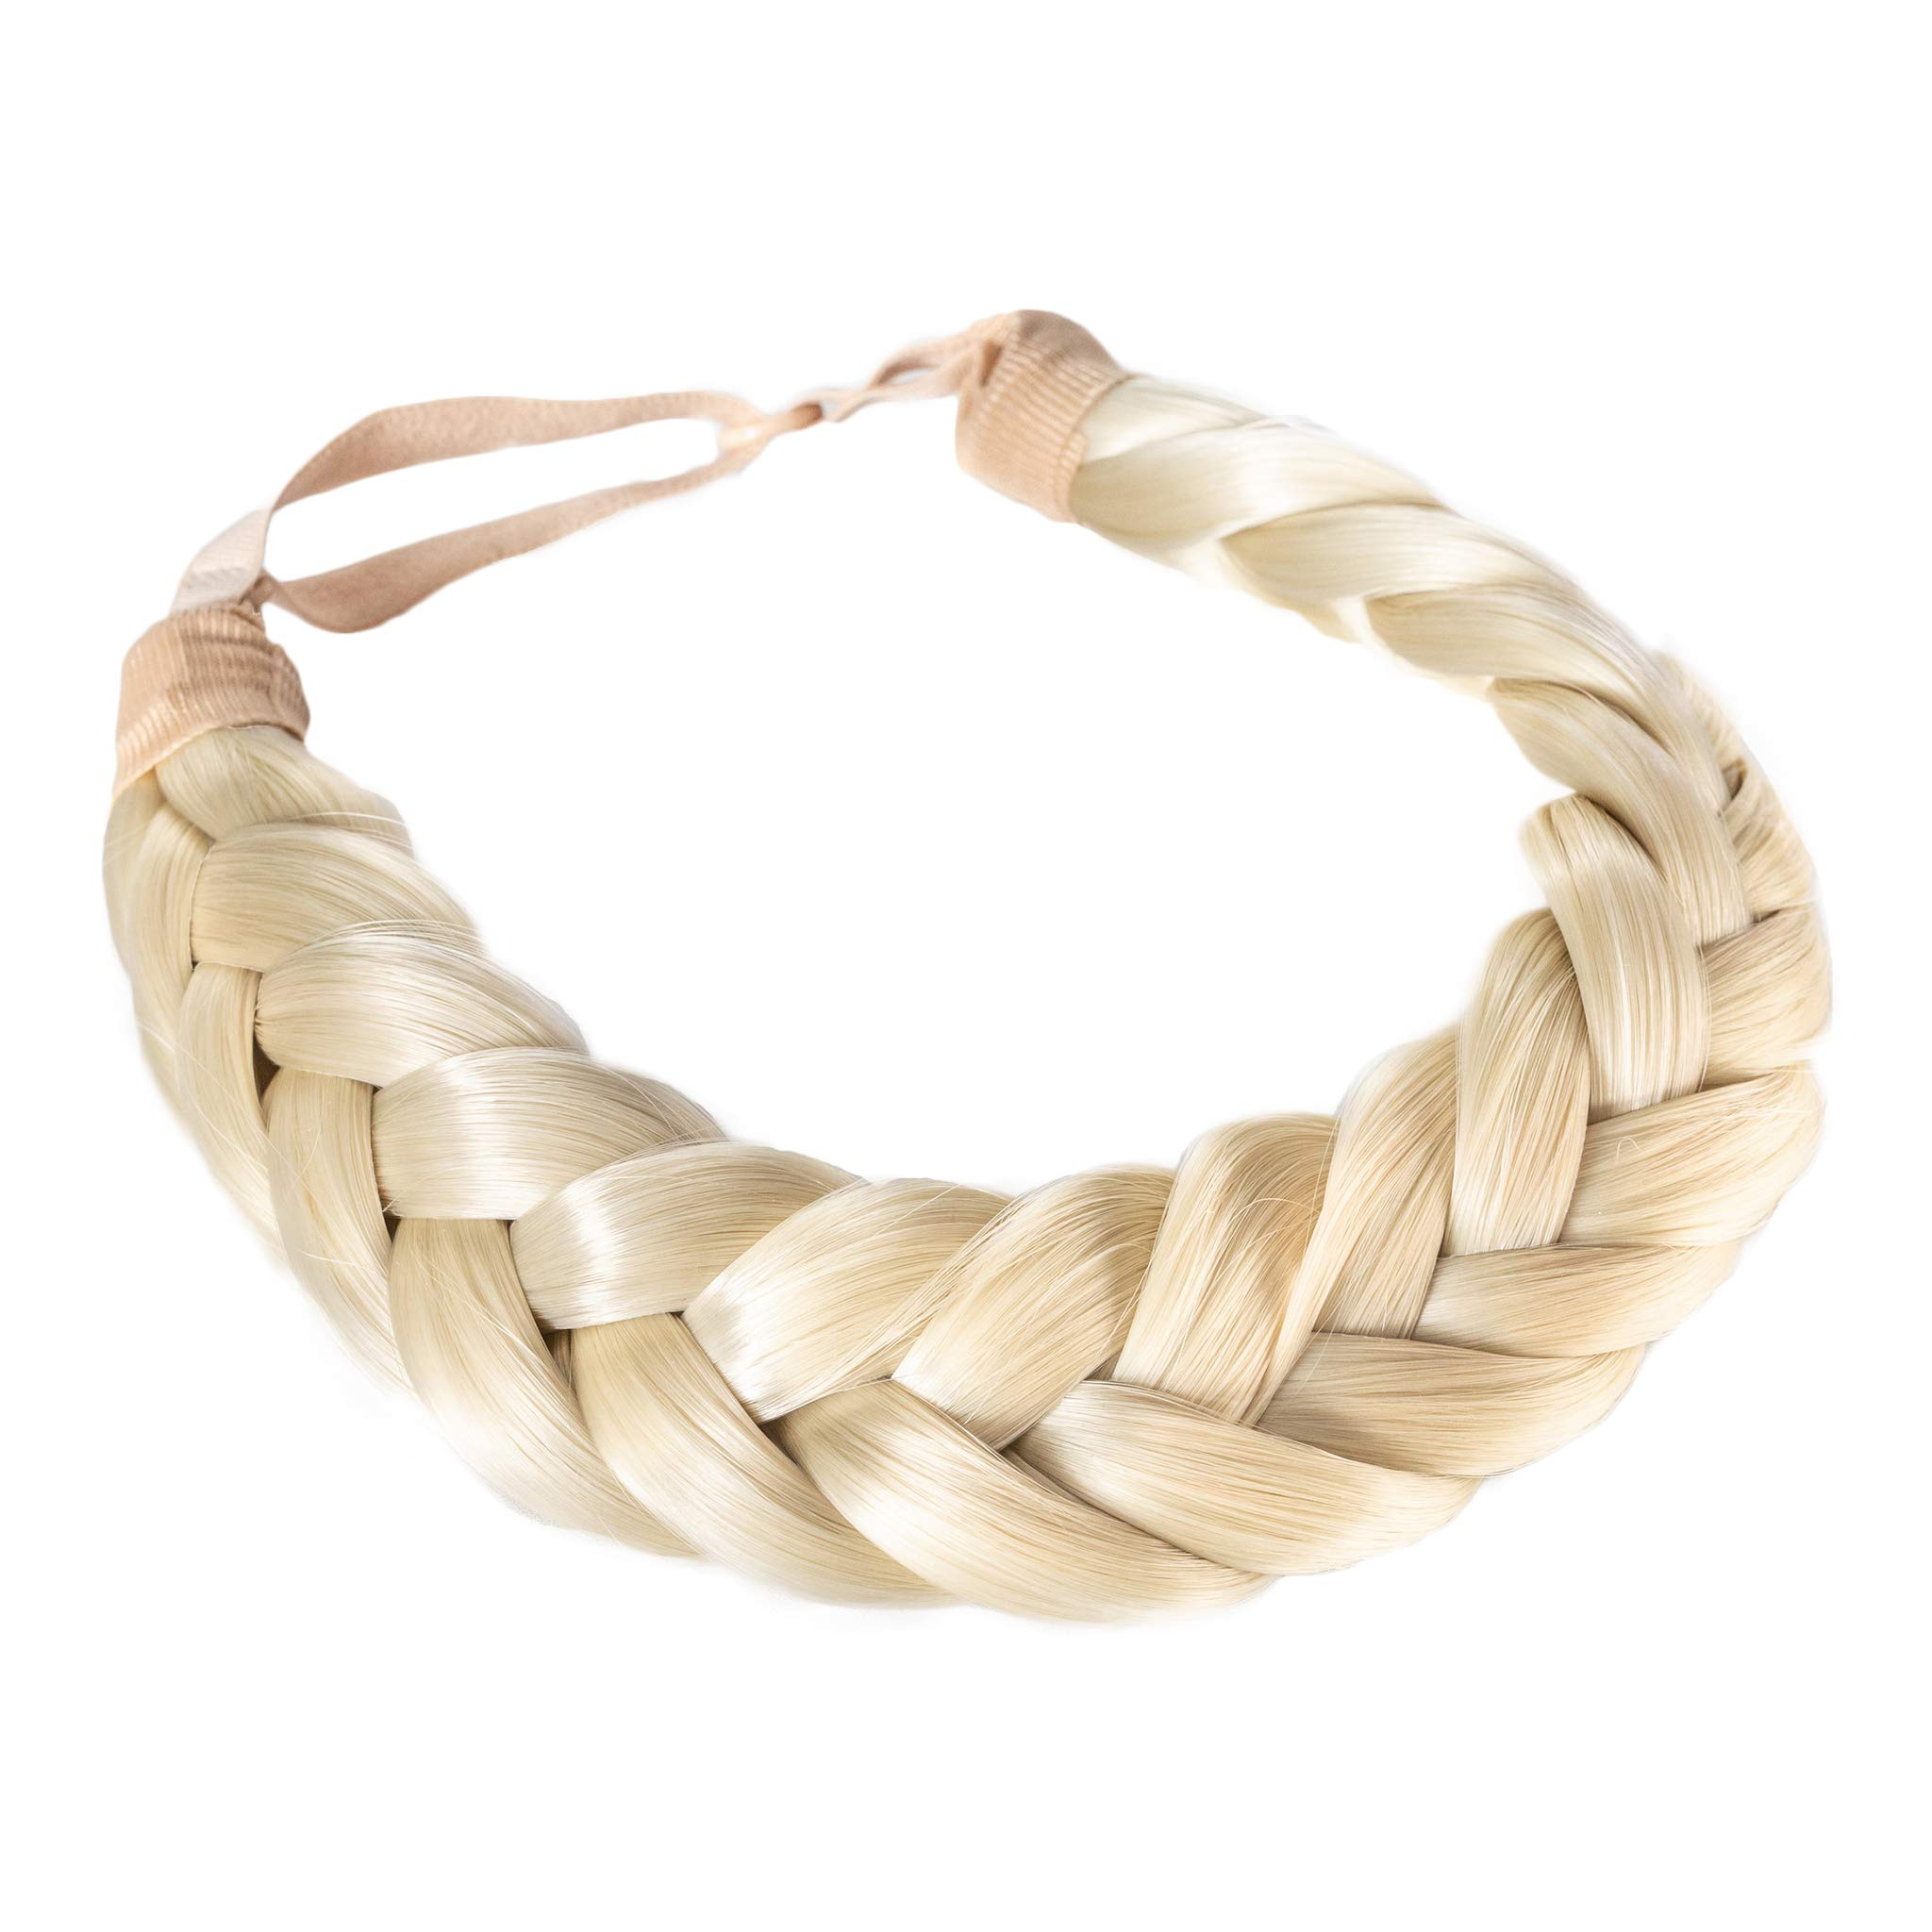 Madison Braids Women's Two Strand Headband Hair Braid Thick Natural looking Extension - Halo - Platinum by MADISON BRAIDS